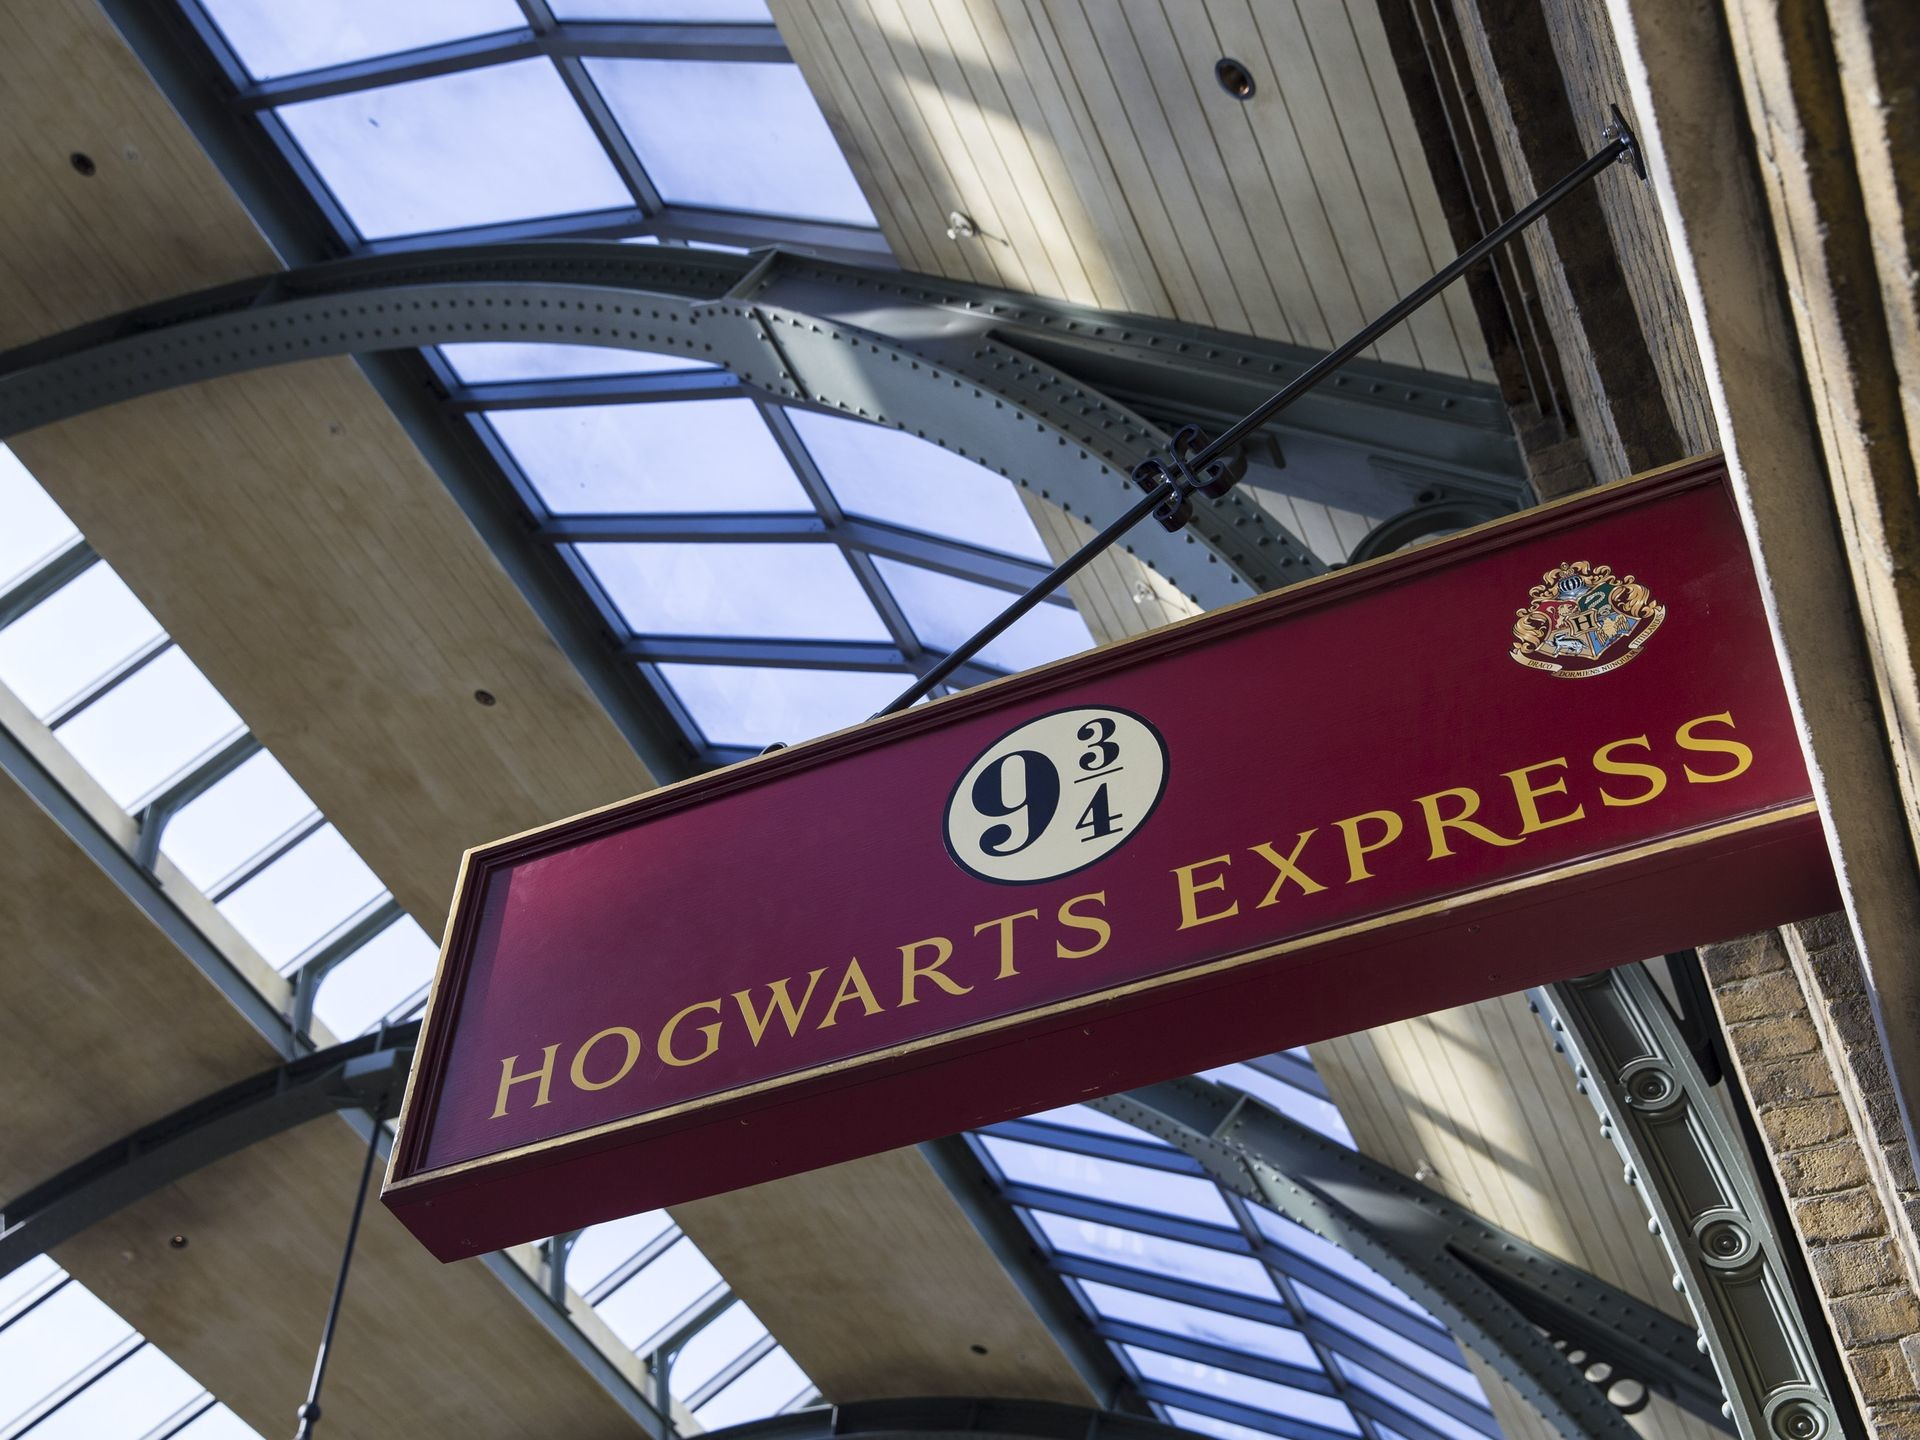 Res: 1920x1440, Hogwarts Express & Platform 9¾ – The Wizarding World of Harry Potter –  Diagon Alley